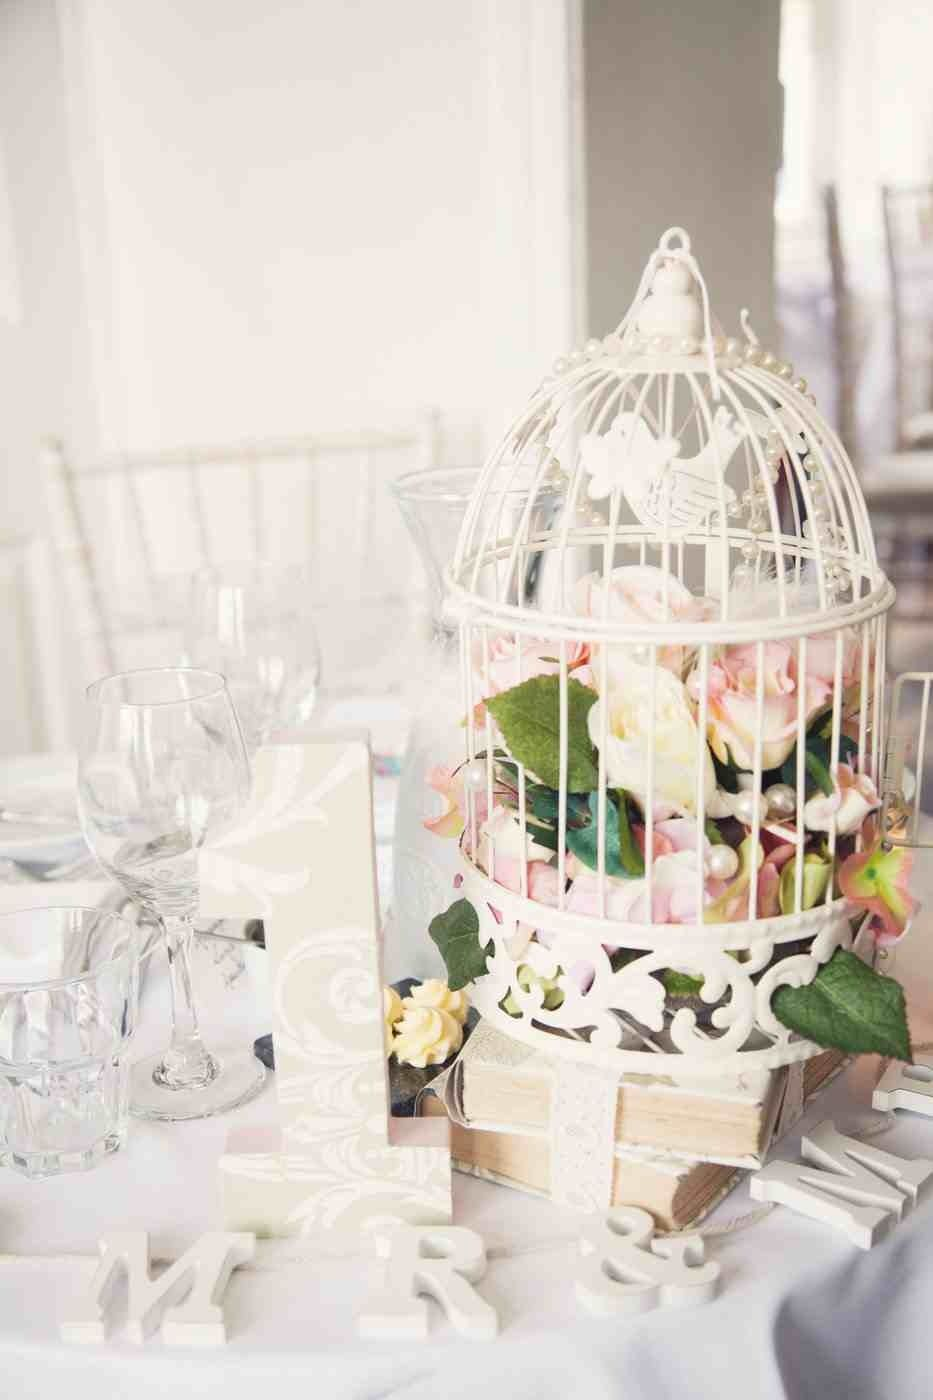 Sweetheart table, table for 2, wedding, shabby chic, birdcage, books ...